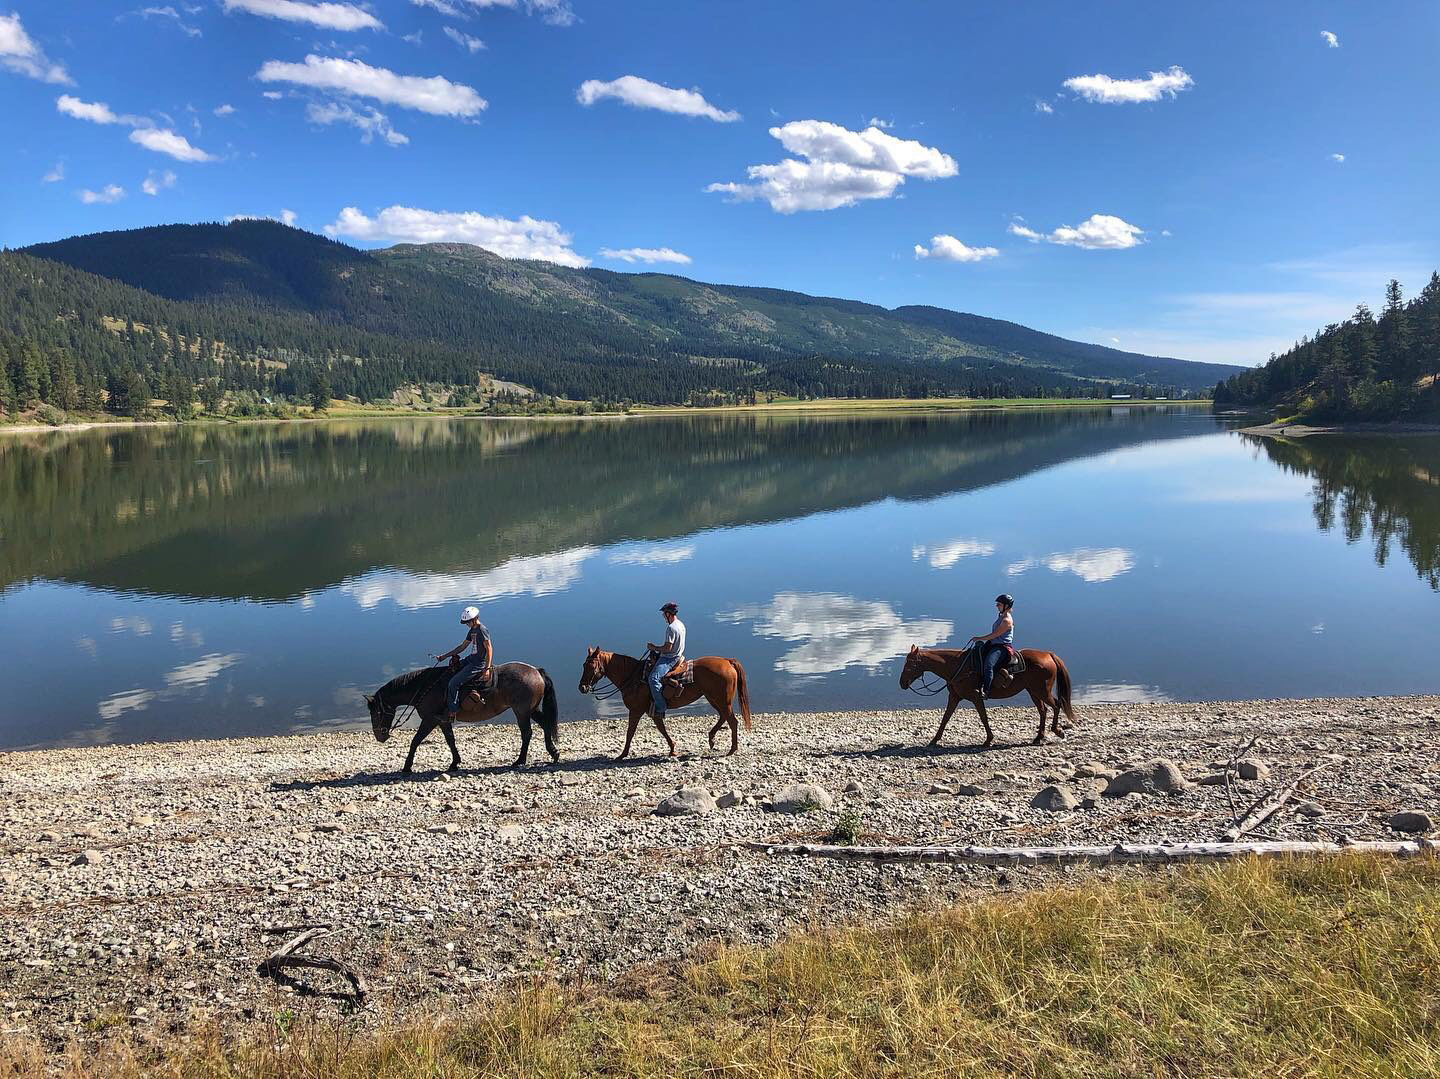 workaway, helpx, food and accommodation, volunteering, volunteer, hospitality exchange, free accommodation, horses, ranch, farm, horsemanship, riding a horse, Canada